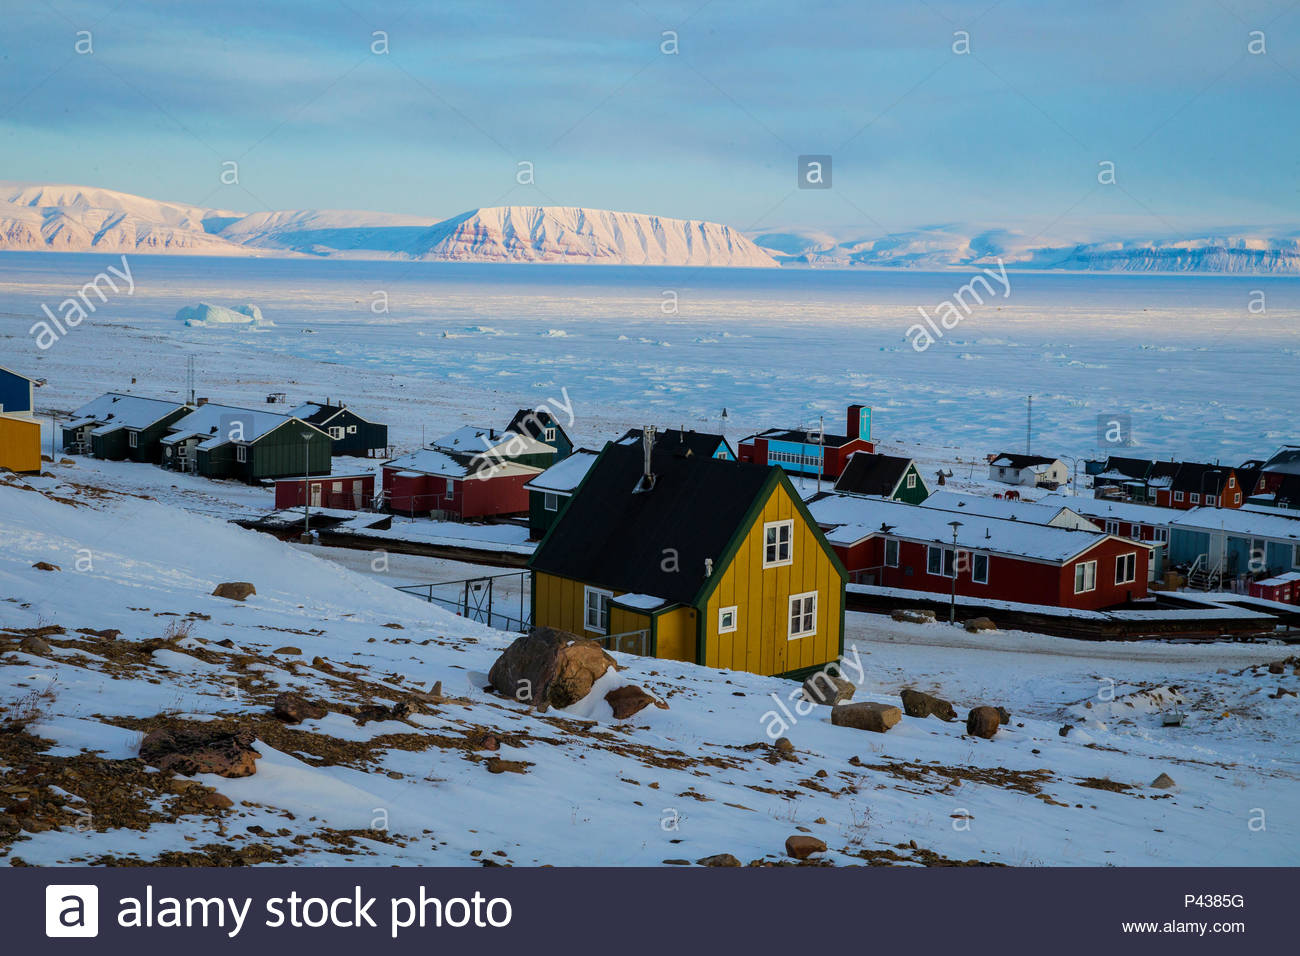 A village on the edge of the sea ice. - Stock Image